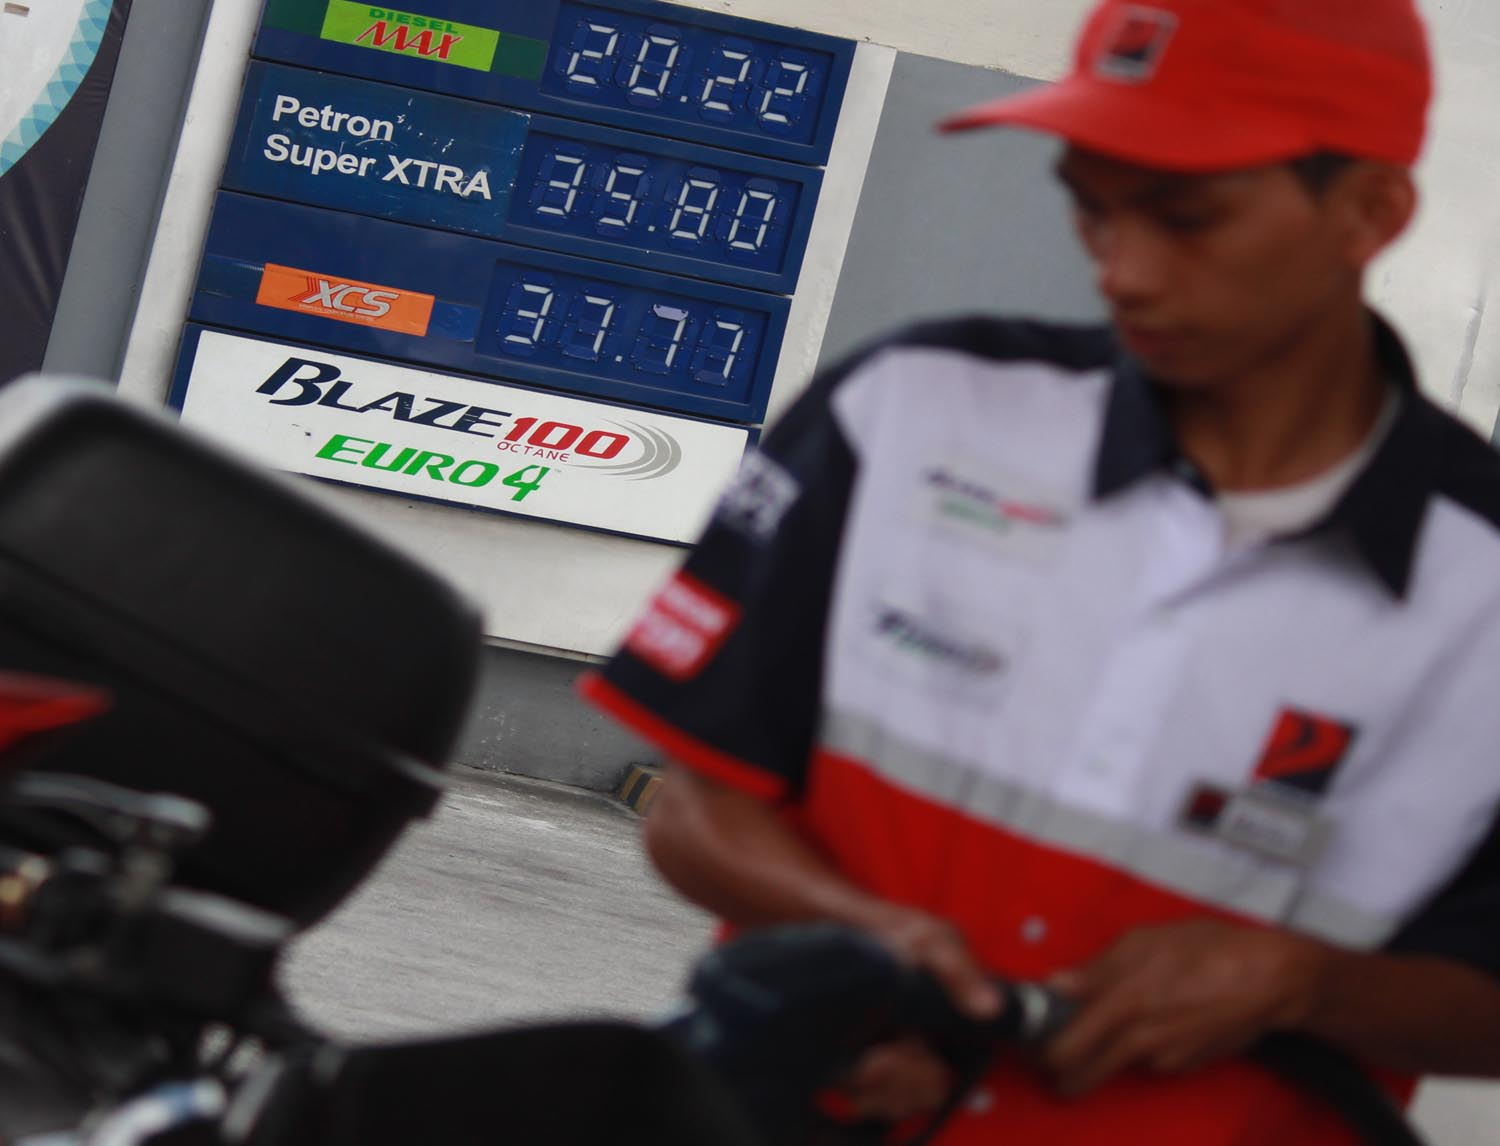 Fuel prices going up again Dec 20